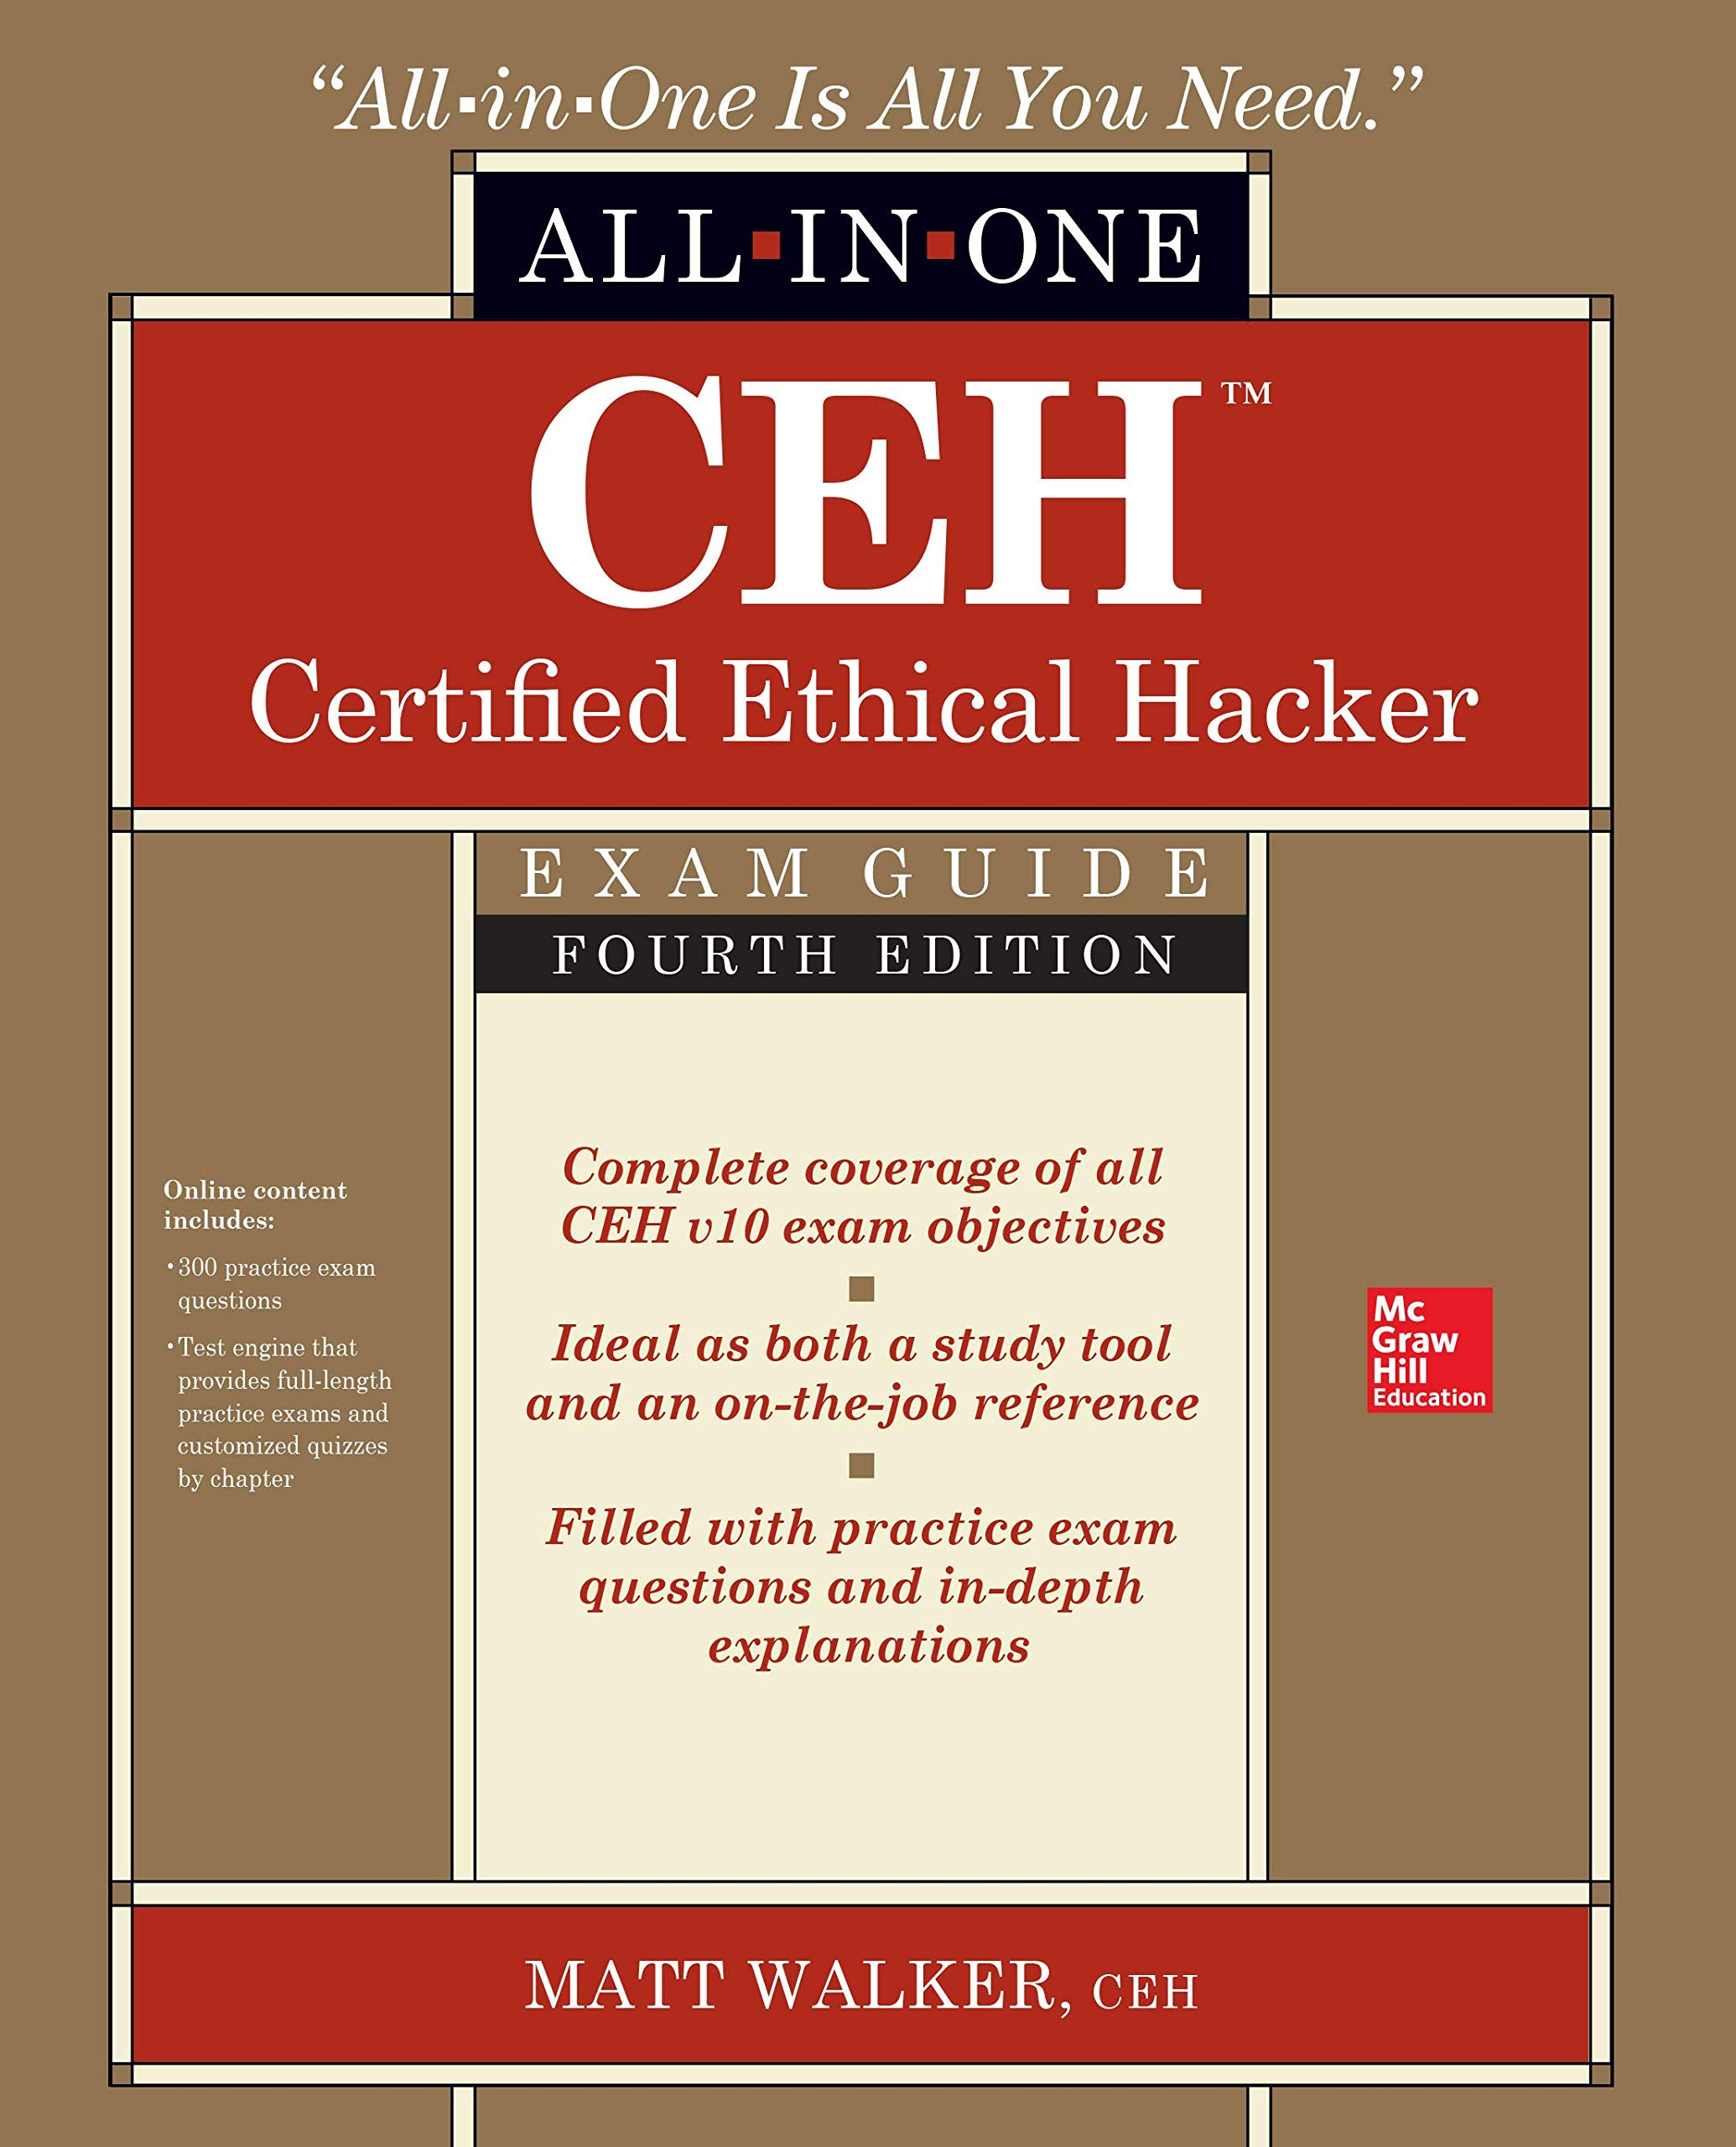 CEH Certified Ethical Hacker All-in-One Exam Guide, Fourth Edition by McGraw-Hill Education